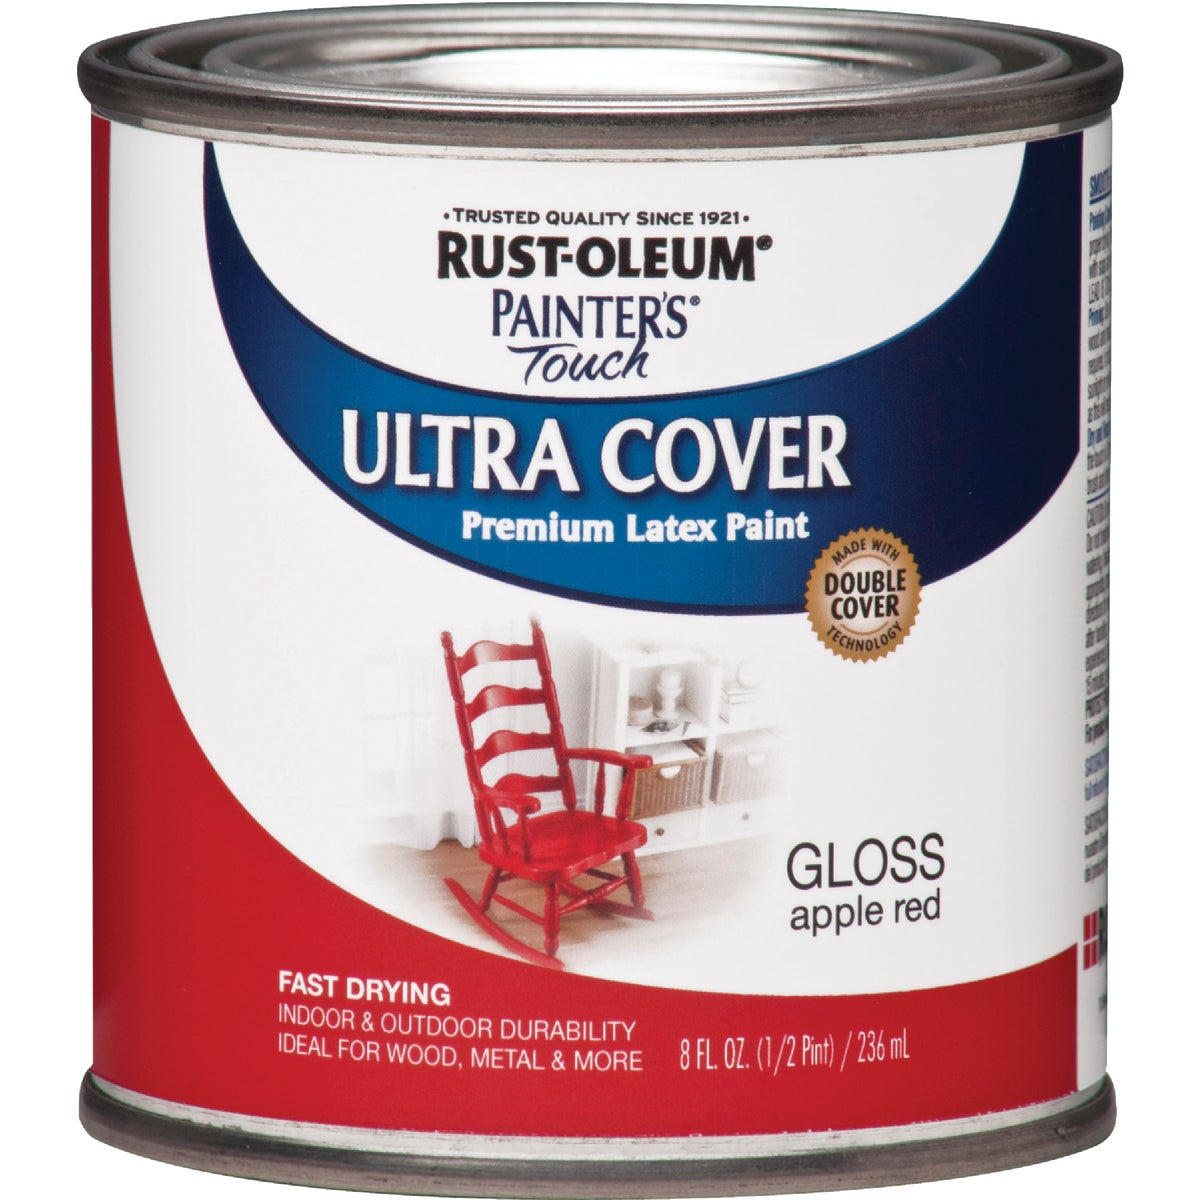 APPLE RED LATEX PAINT - 1966-730 by Rustoleum